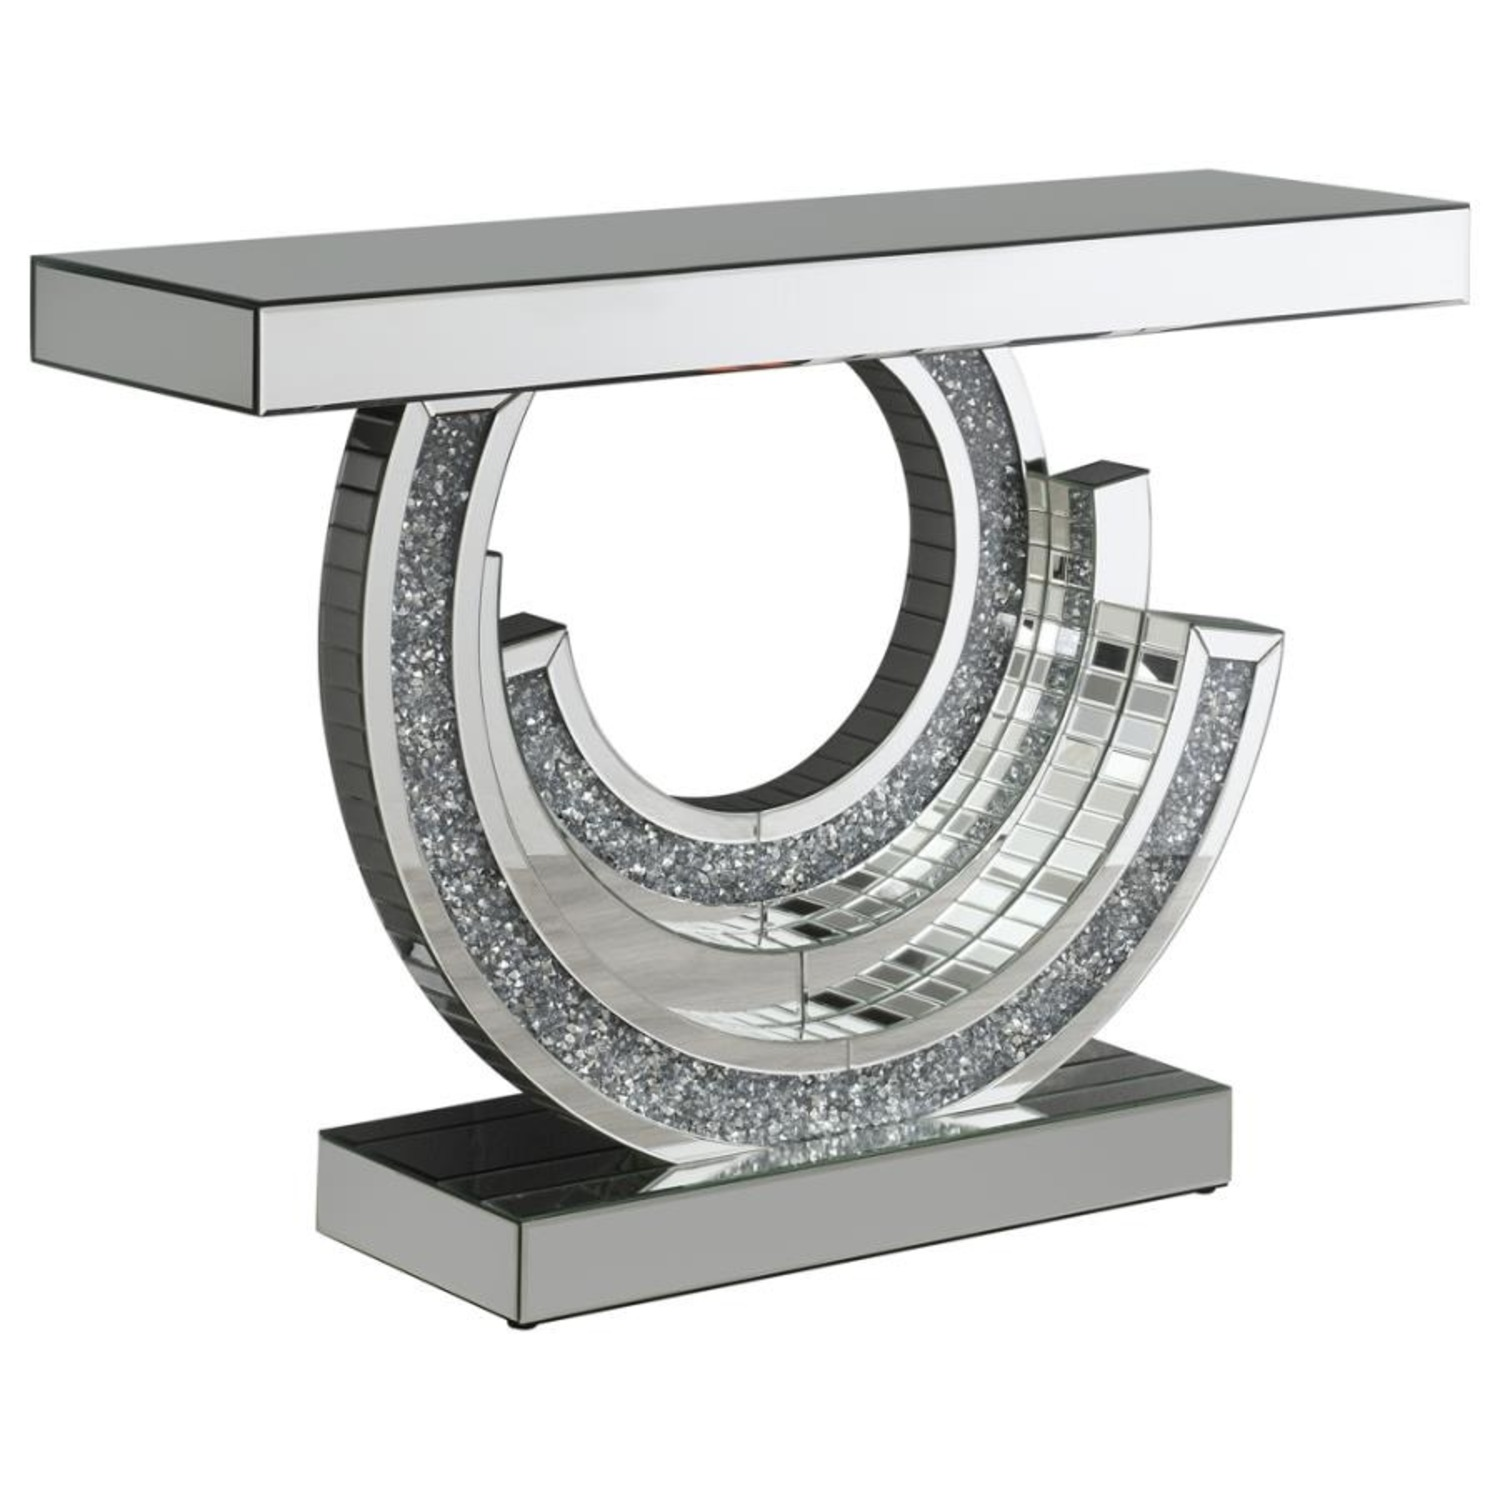 Console Table In Silver W/ Mirrored Table Top - image-0